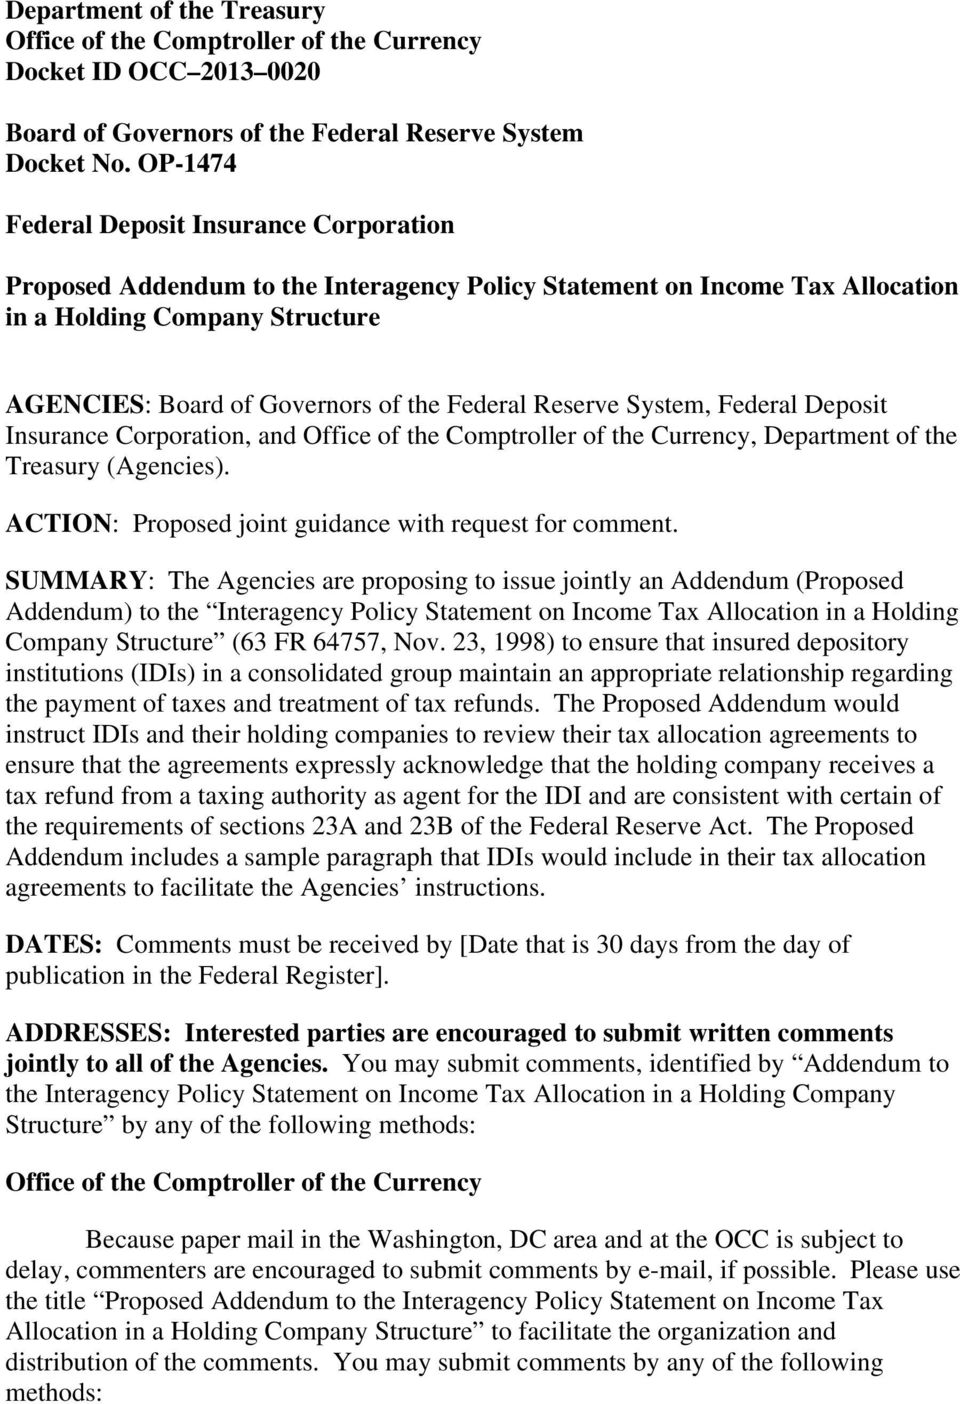 Reserve System, Federal Deposit Insurance Corporation, and Office of the Comptroller of the Currency, Department of the Treasury (Agencies). ACTION: Proposed joint guidance with request for comment.